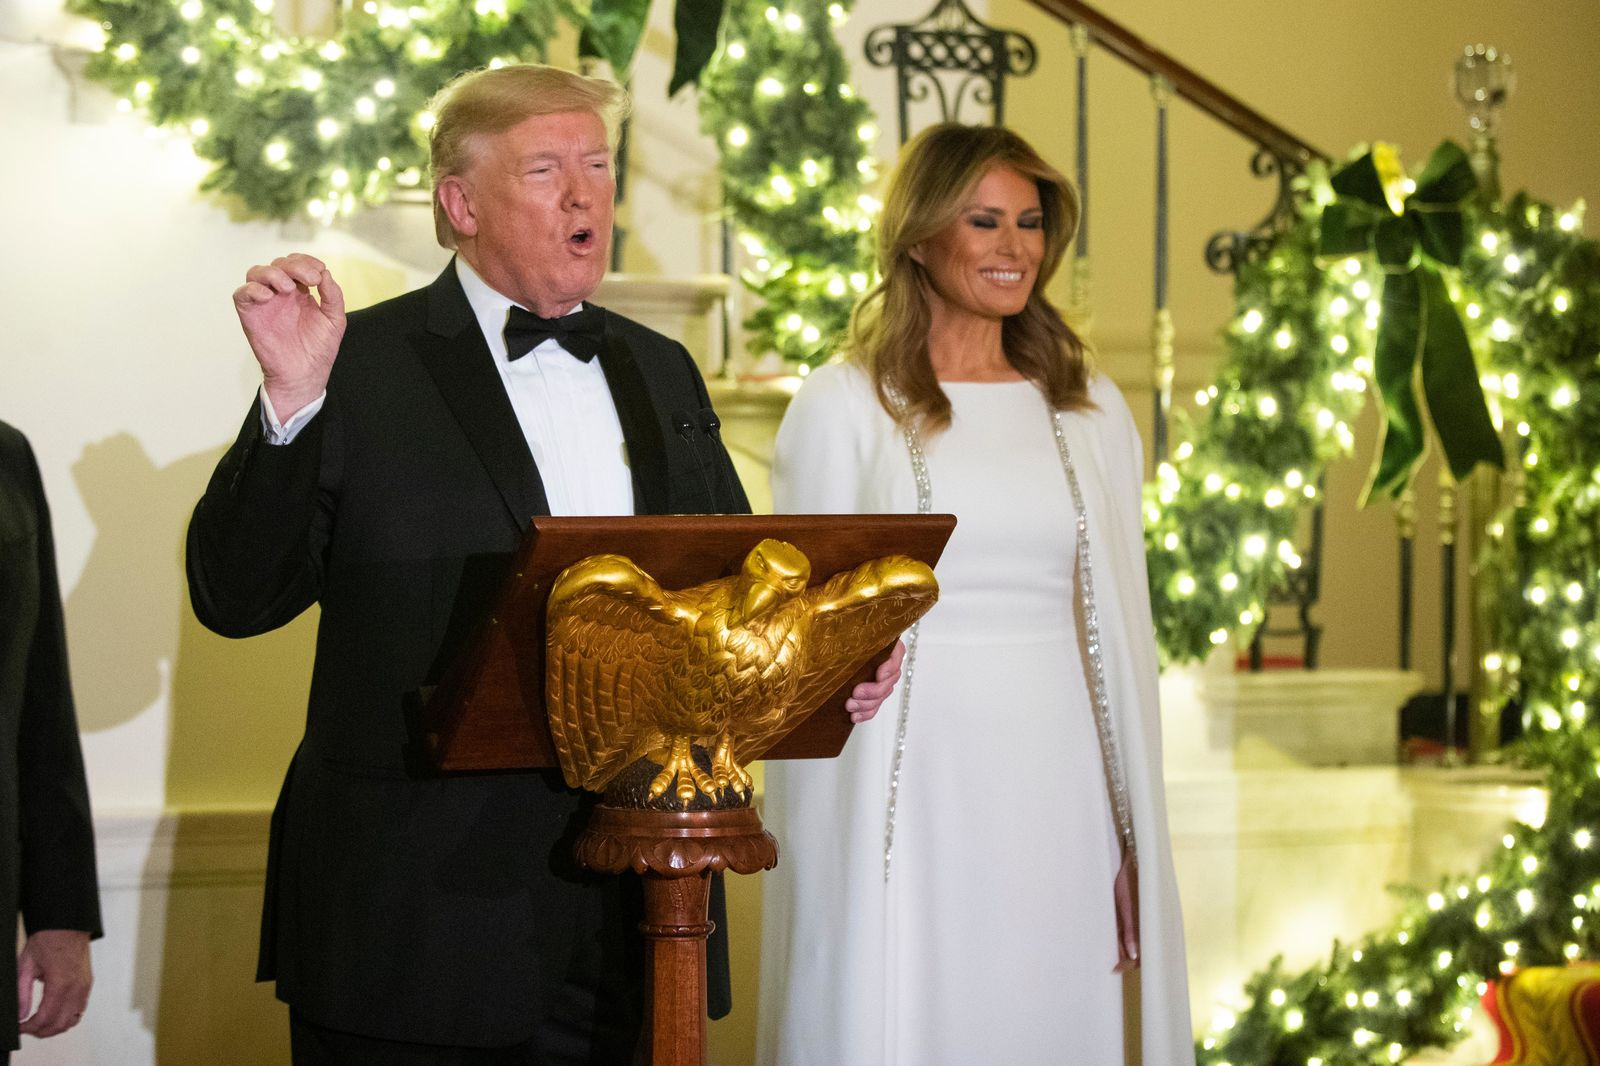 President Donald Trump with first lady Melania Trump speaks at the Grand Foyer of the White House during the Congressional Ball, Thursday, Dec. 12, 2019, in Washington. (AP Photo/Manuel Balce Ceneta)